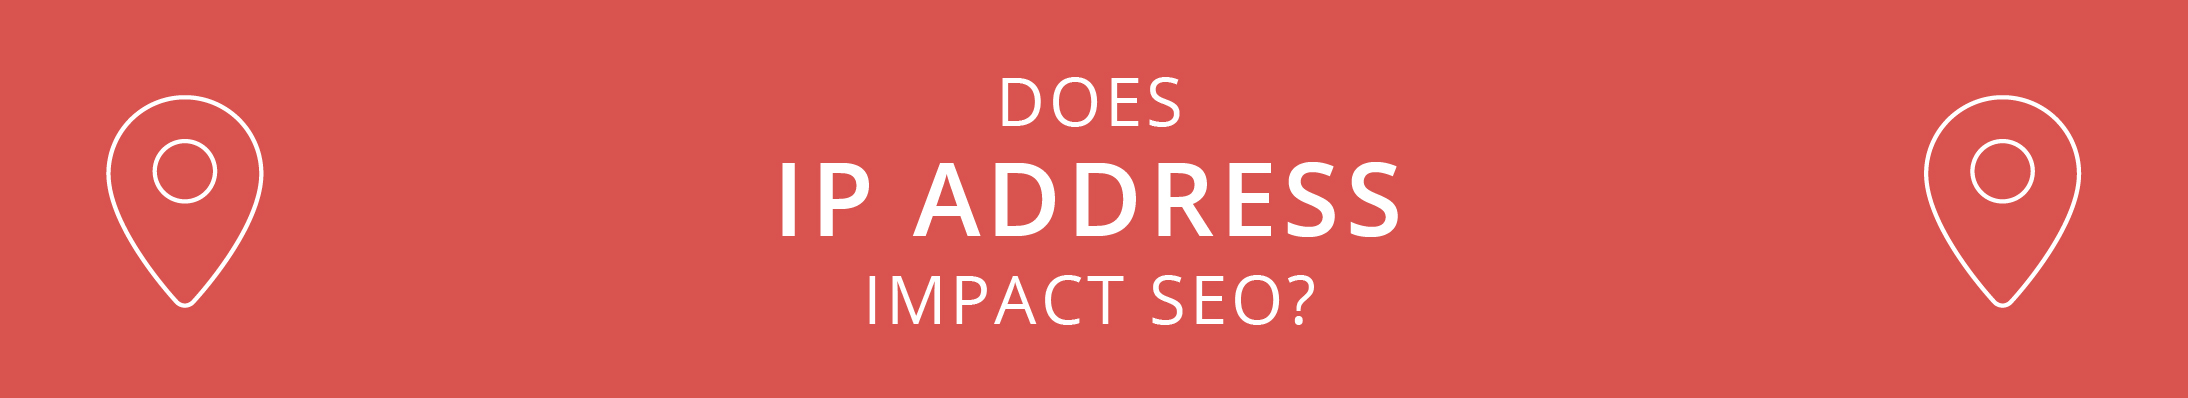 How Does IP Address Impact SEO?